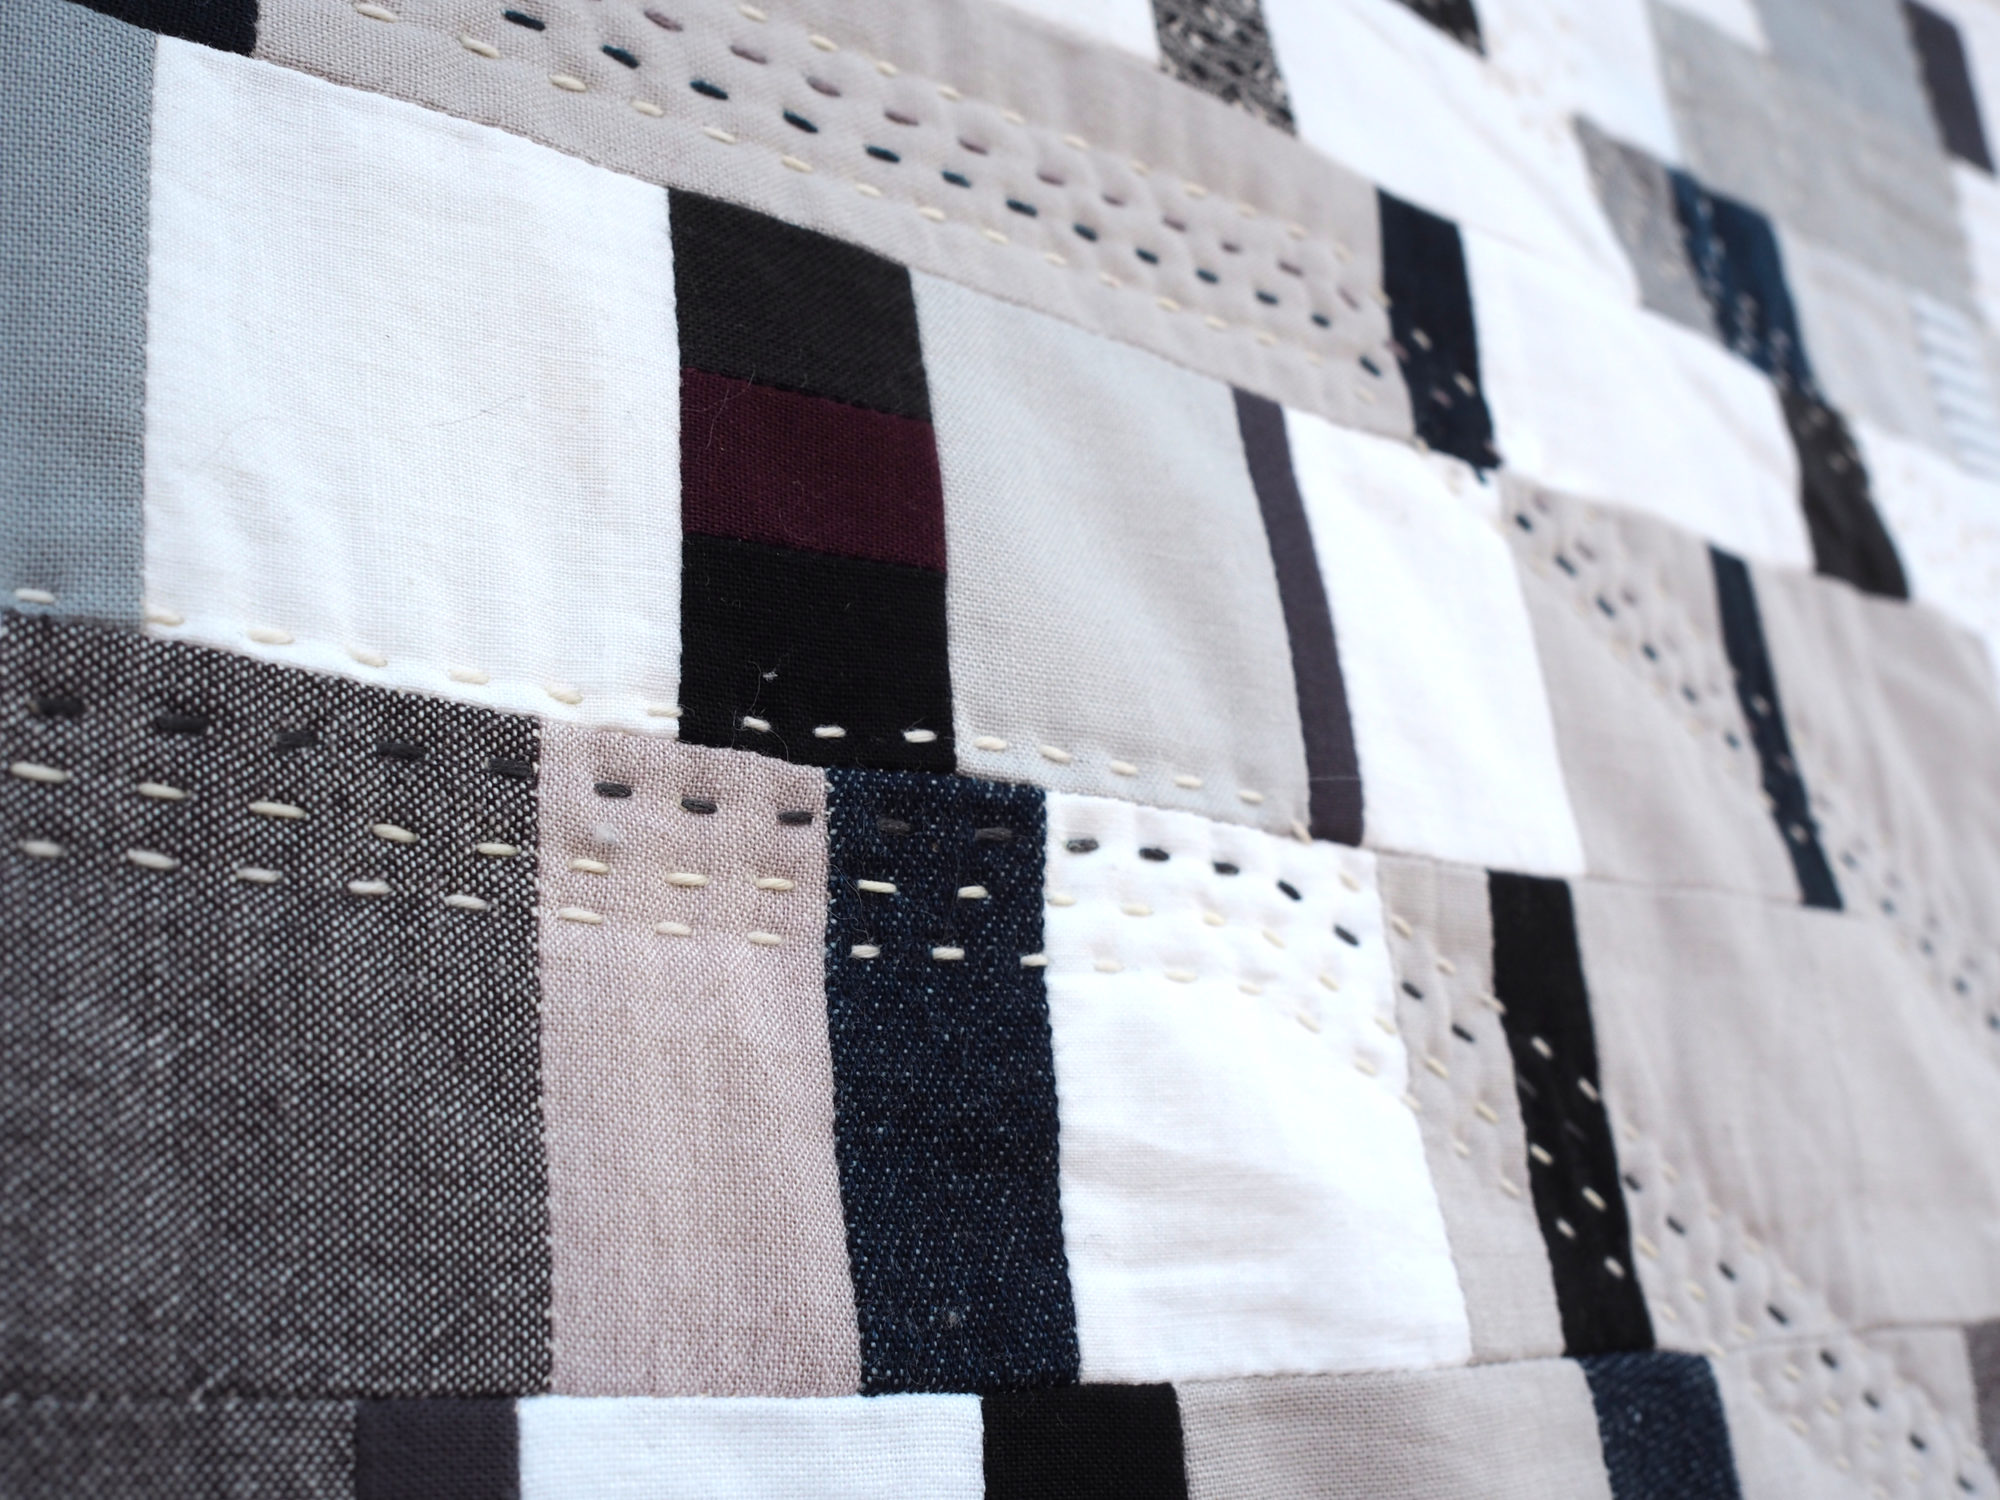 Quilt no. 020 by Shelby Marie Skumanich: Close Up